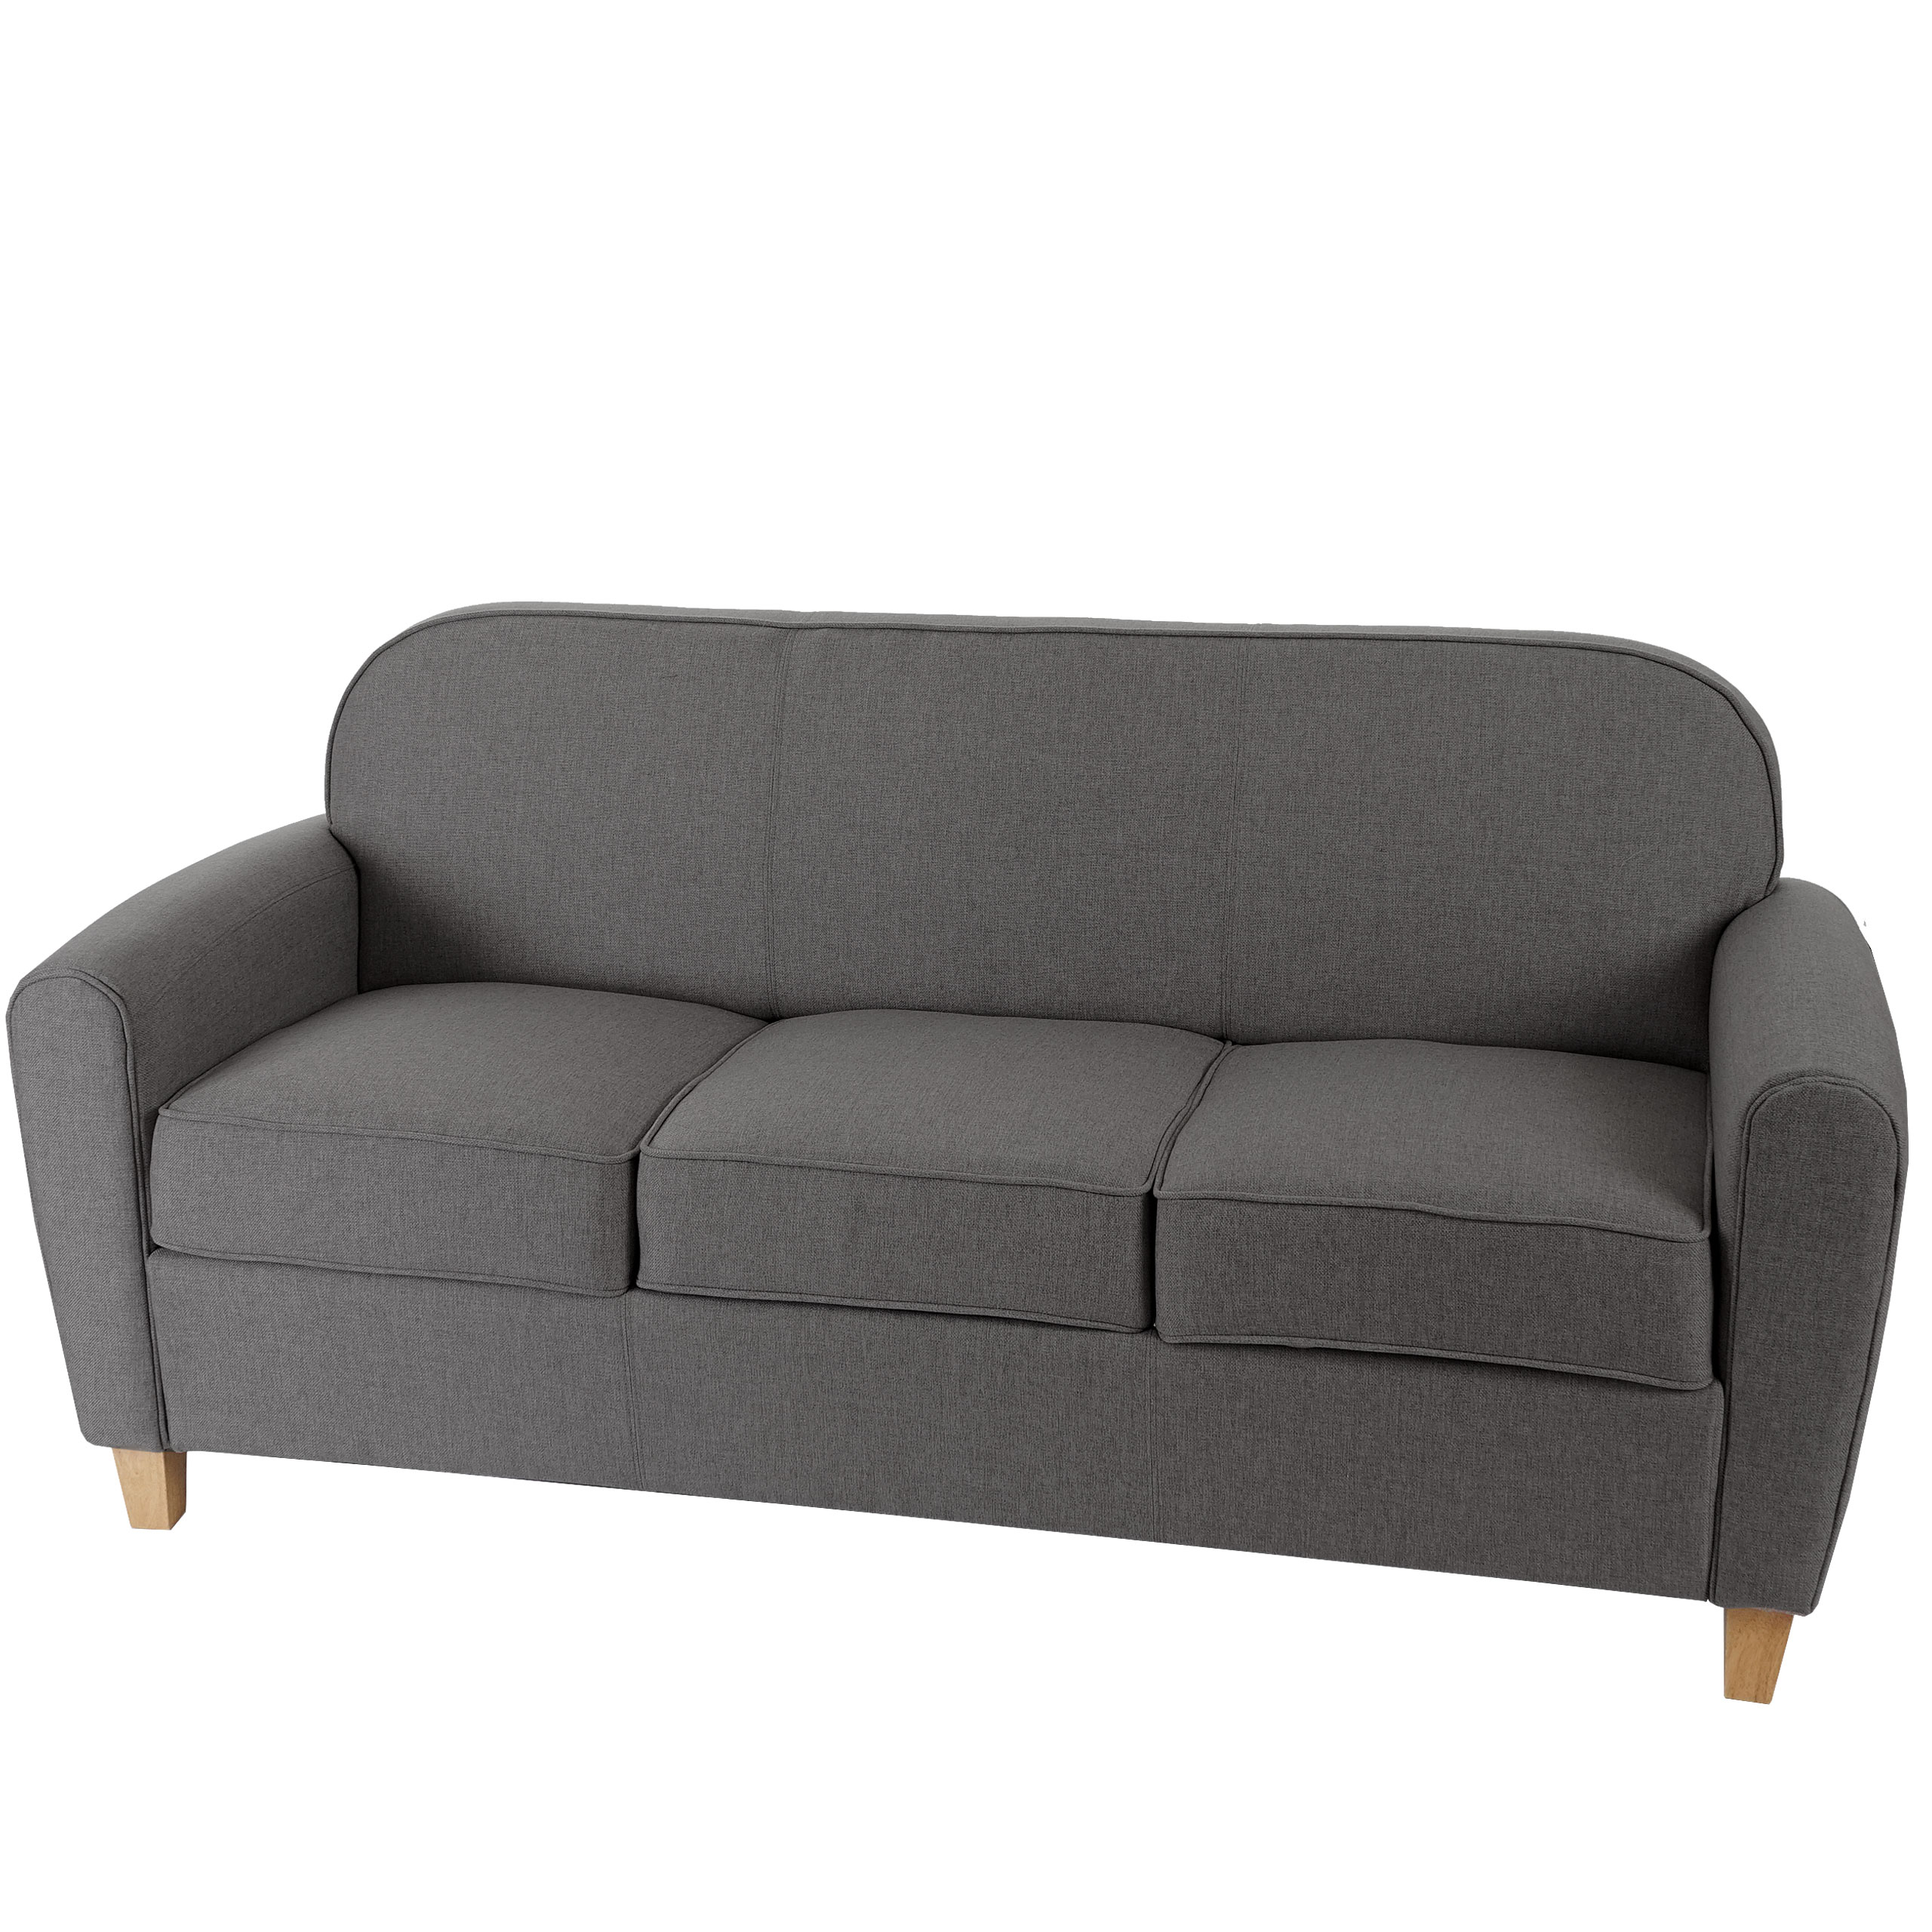 3er sofa malm t377 loungesofa couch retro 50er jahre design ebay. Black Bedroom Furniture Sets. Home Design Ideas